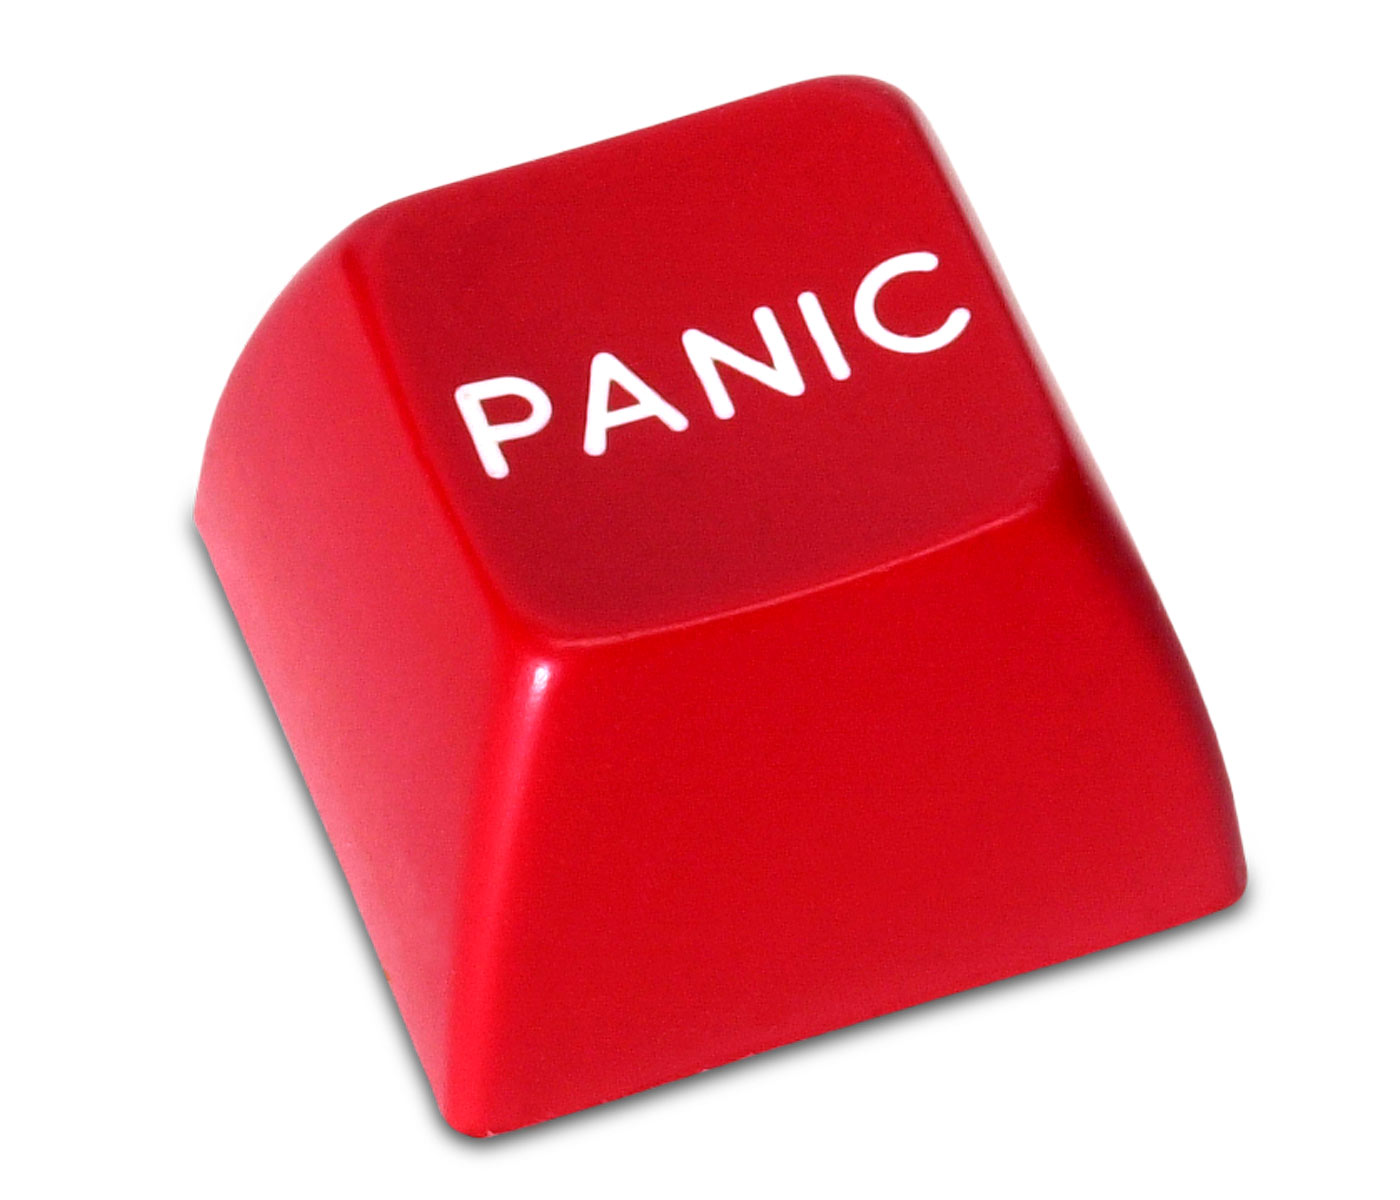 Do You Have Your Panic Button On All The Time